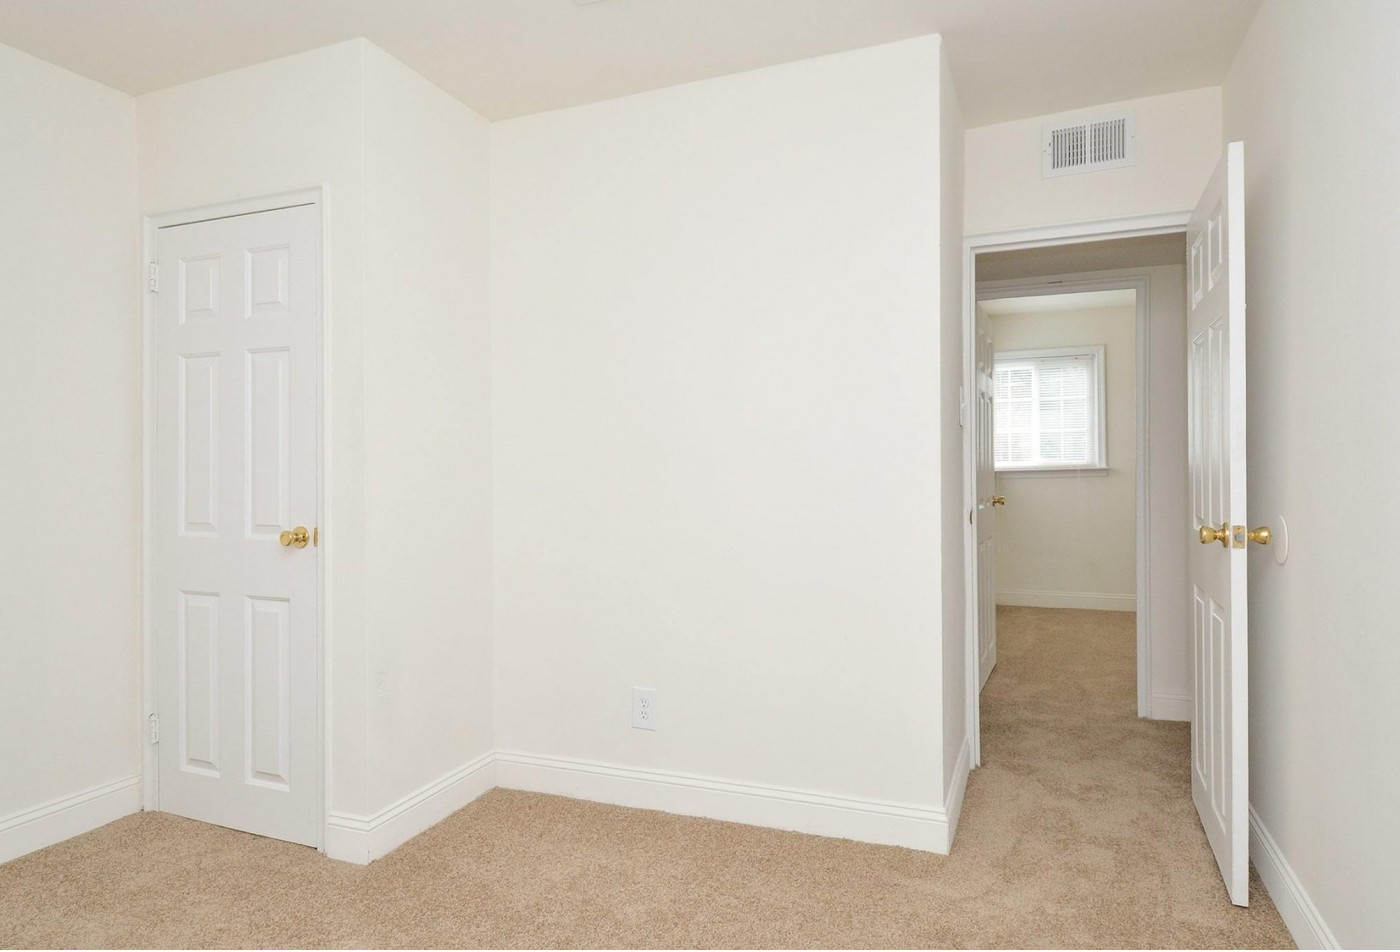 Spacious Living Room | Apartments in Wilmington, DE | Greenville on 141 Apartments & Townhomes